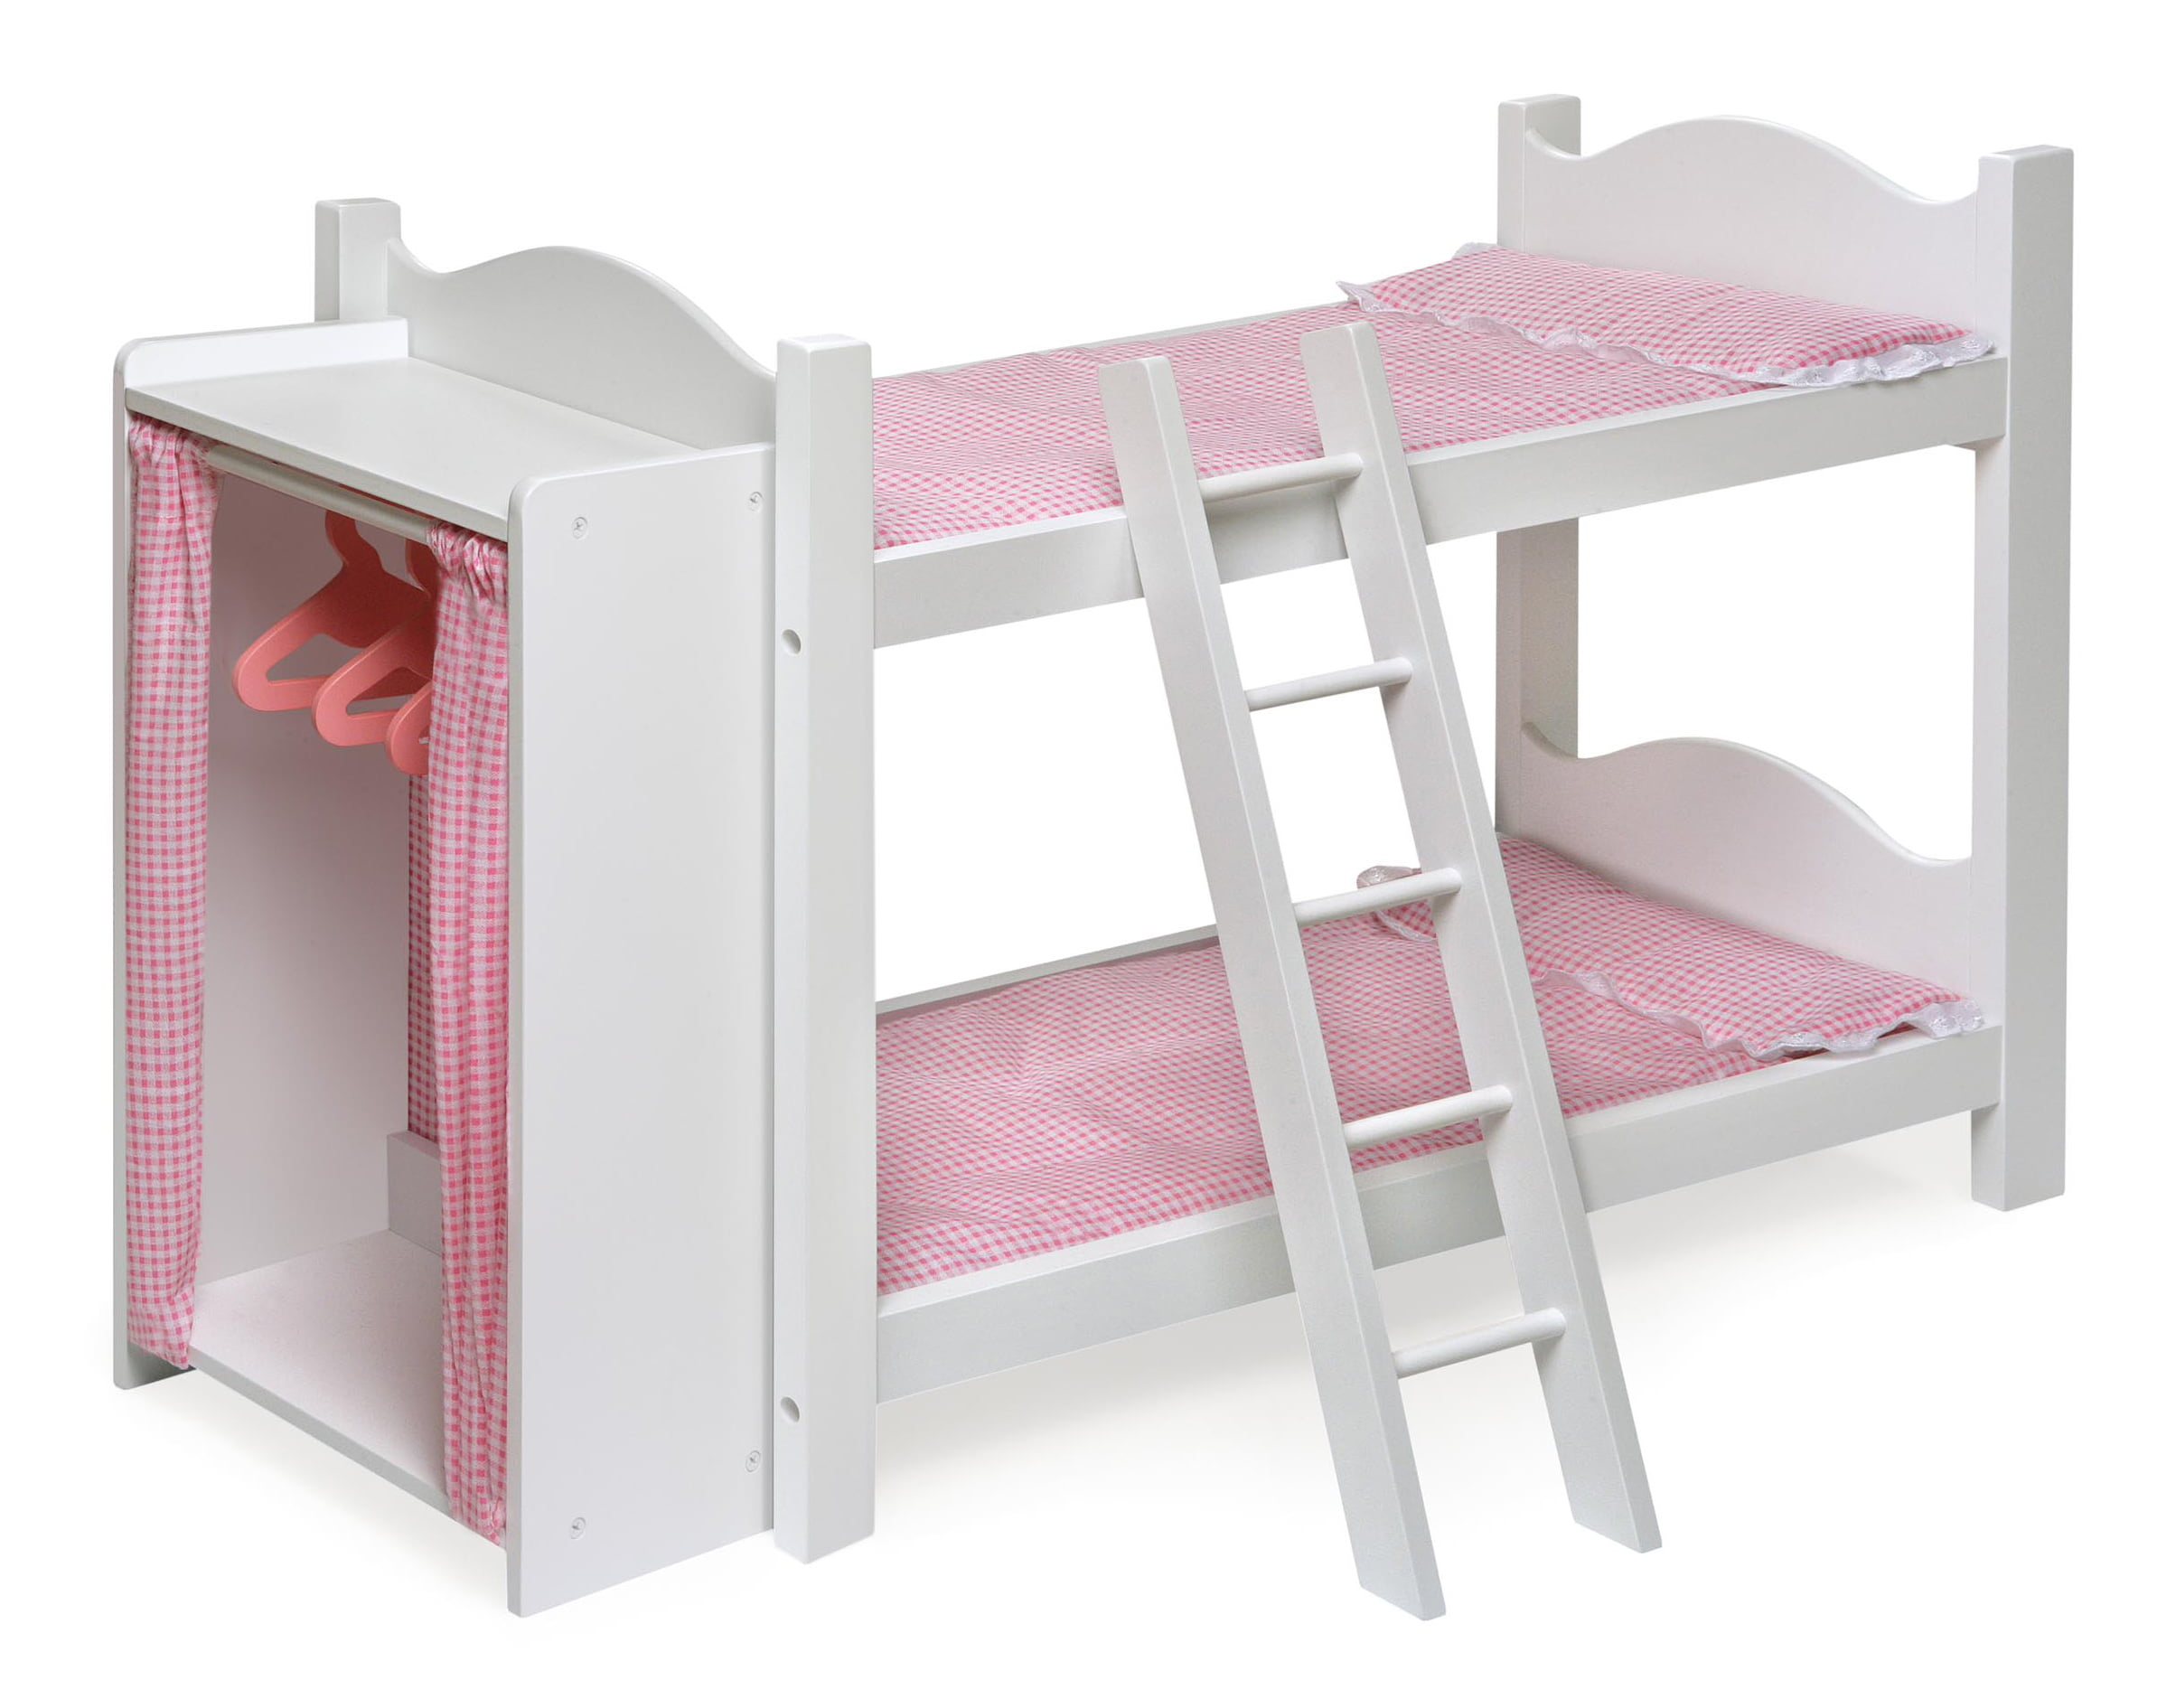 Badger Basket Doll Armoire Bunk Bed With Ladder White Pink Fits American Girl My Life As Most 18 Dolls Com